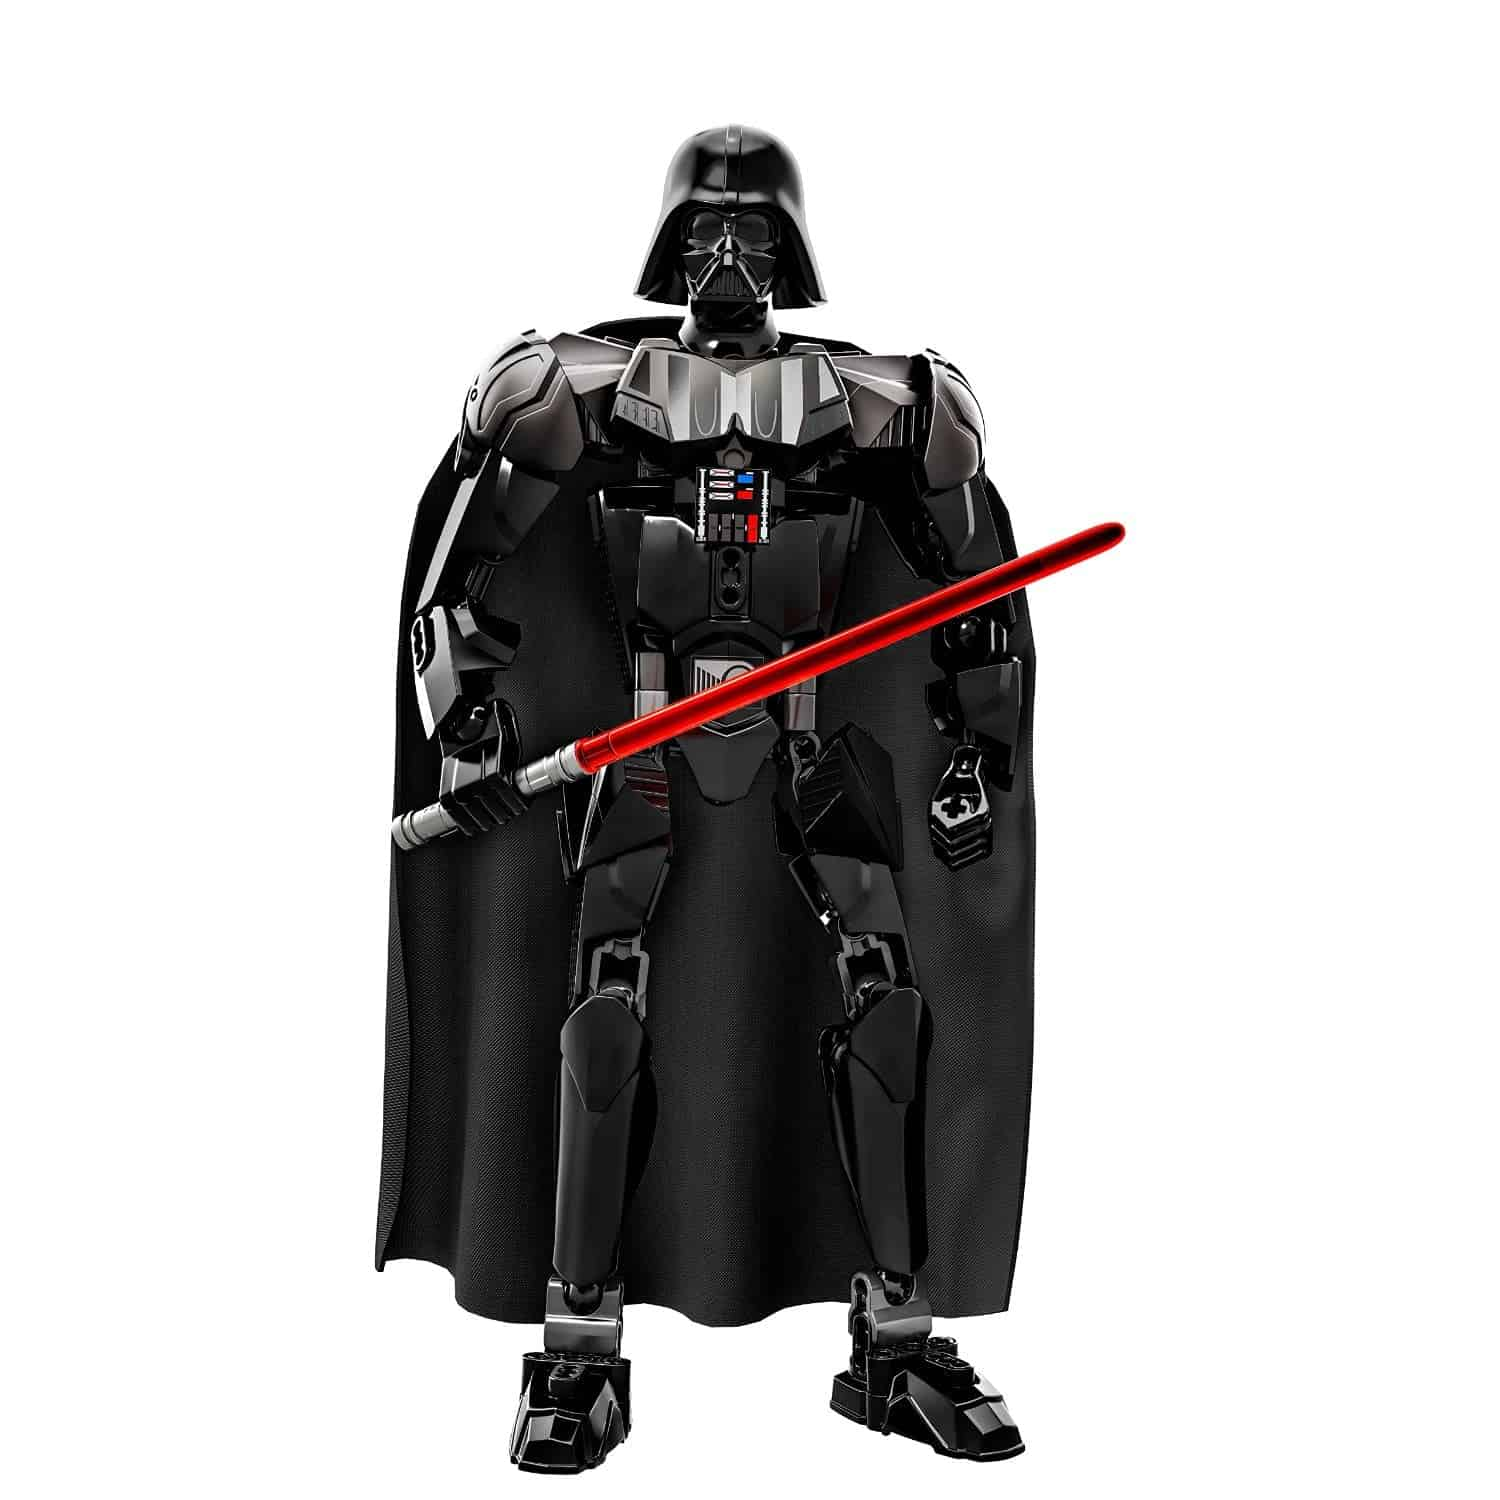 Lego Gift Ideas by Age - Toddler to Twelve Years: Star Wars Darth Vader | www.thepinningmama.com